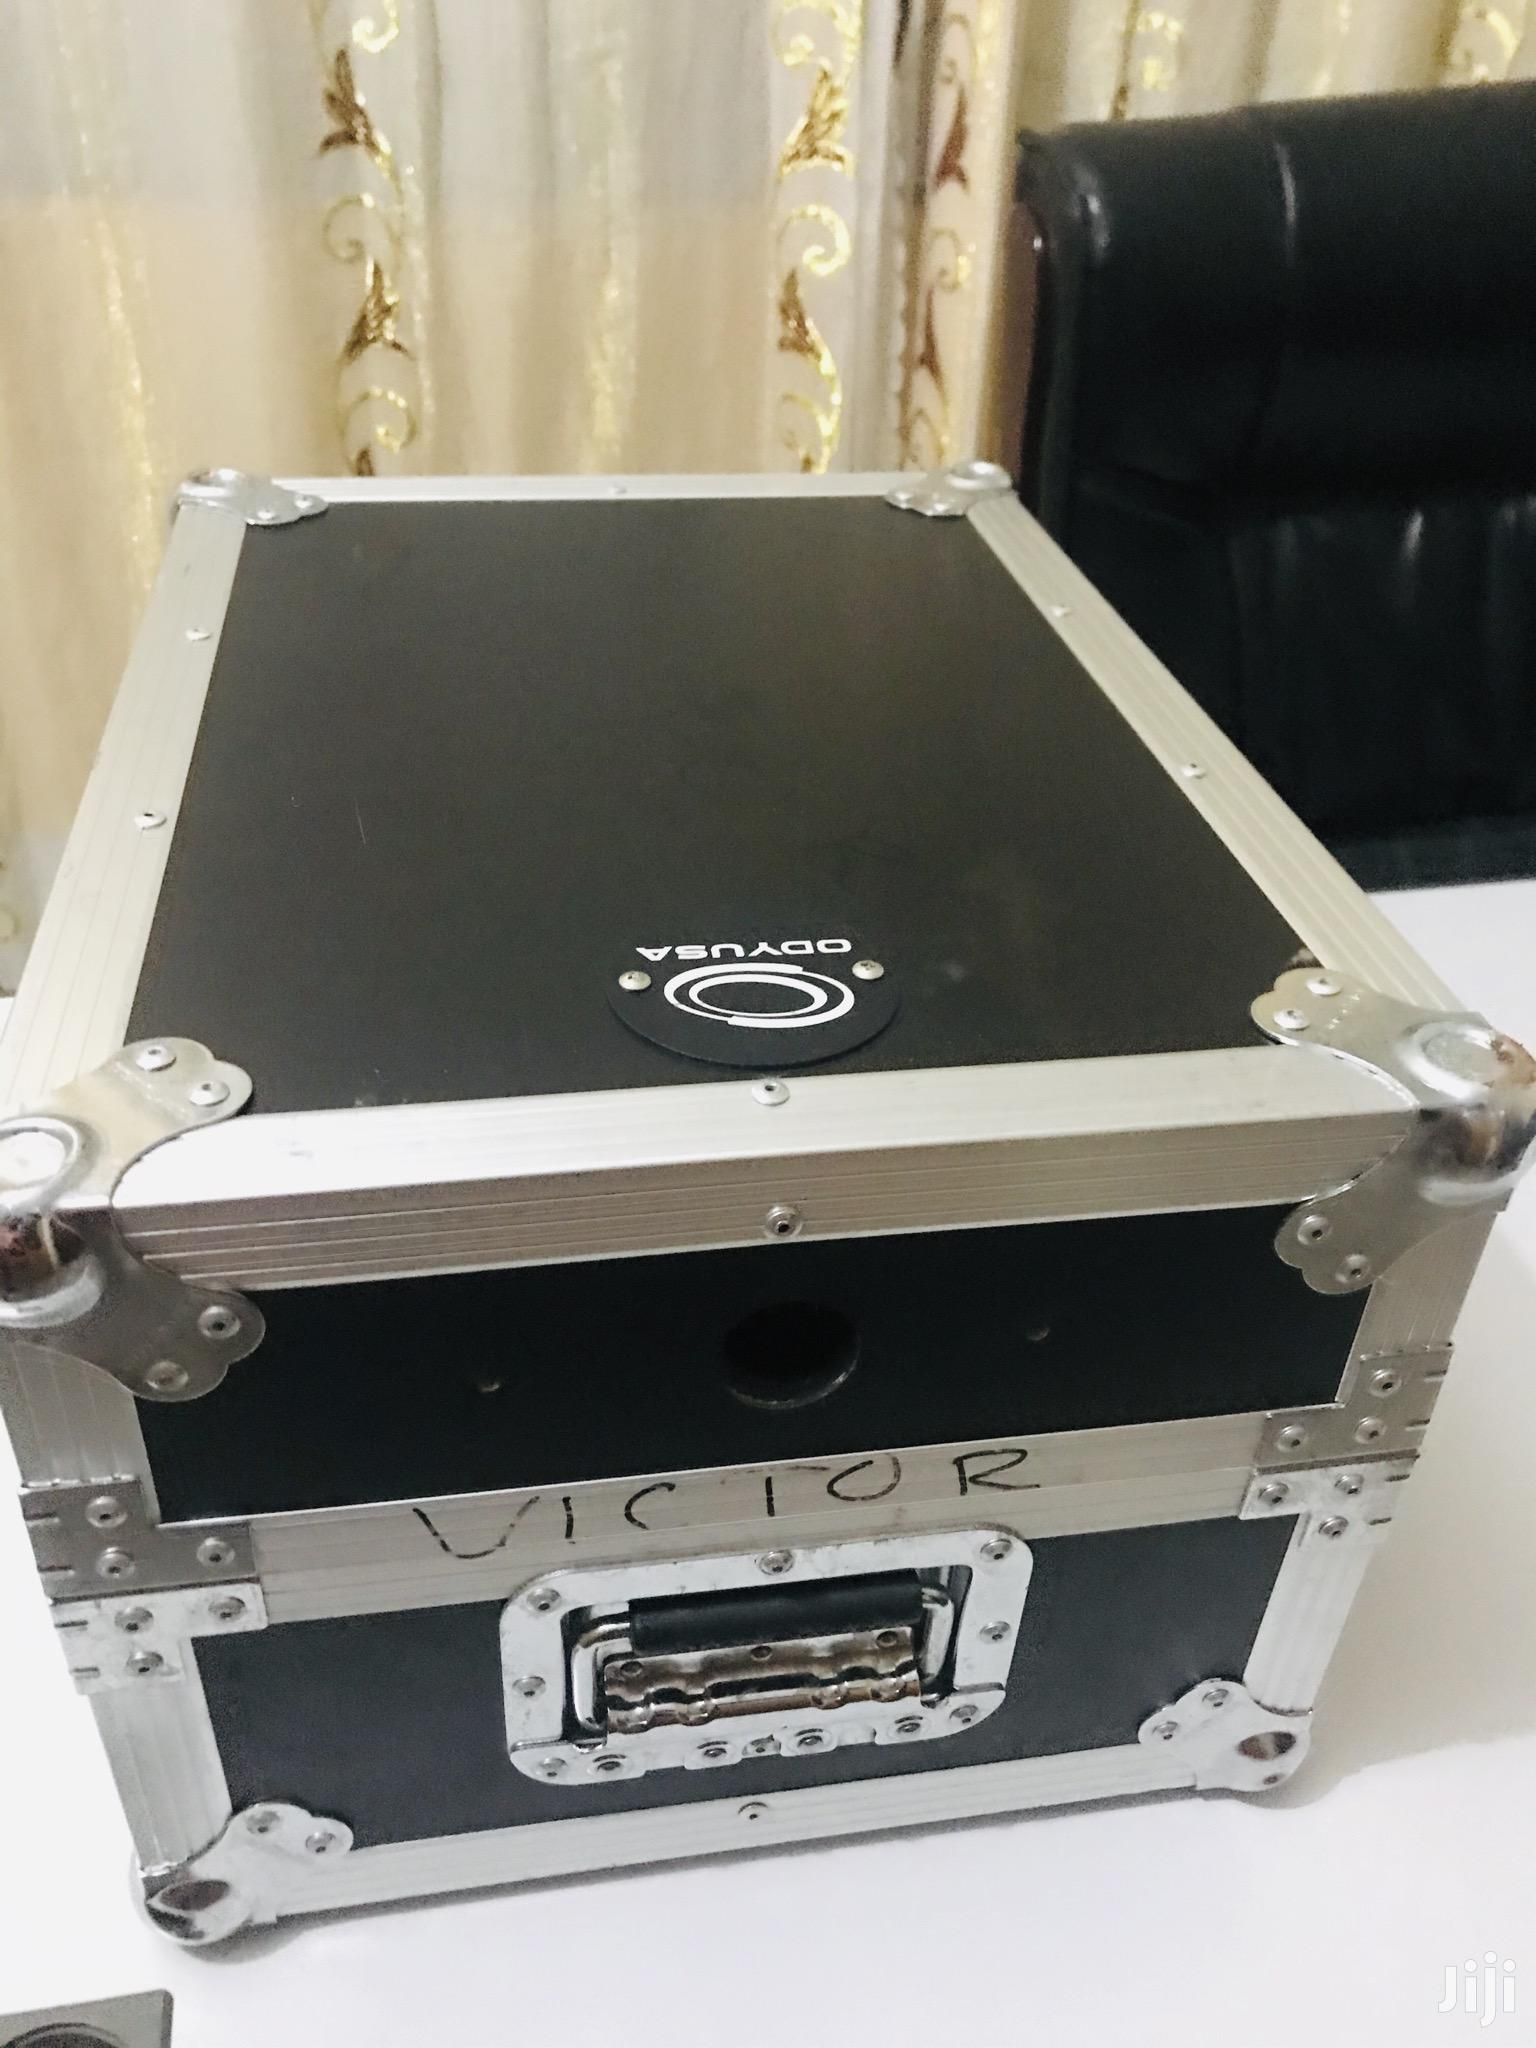 Original Mixer Case | Musical Instruments & Gear for sale in Kinondoni, Dar es Salaam, Tanzania